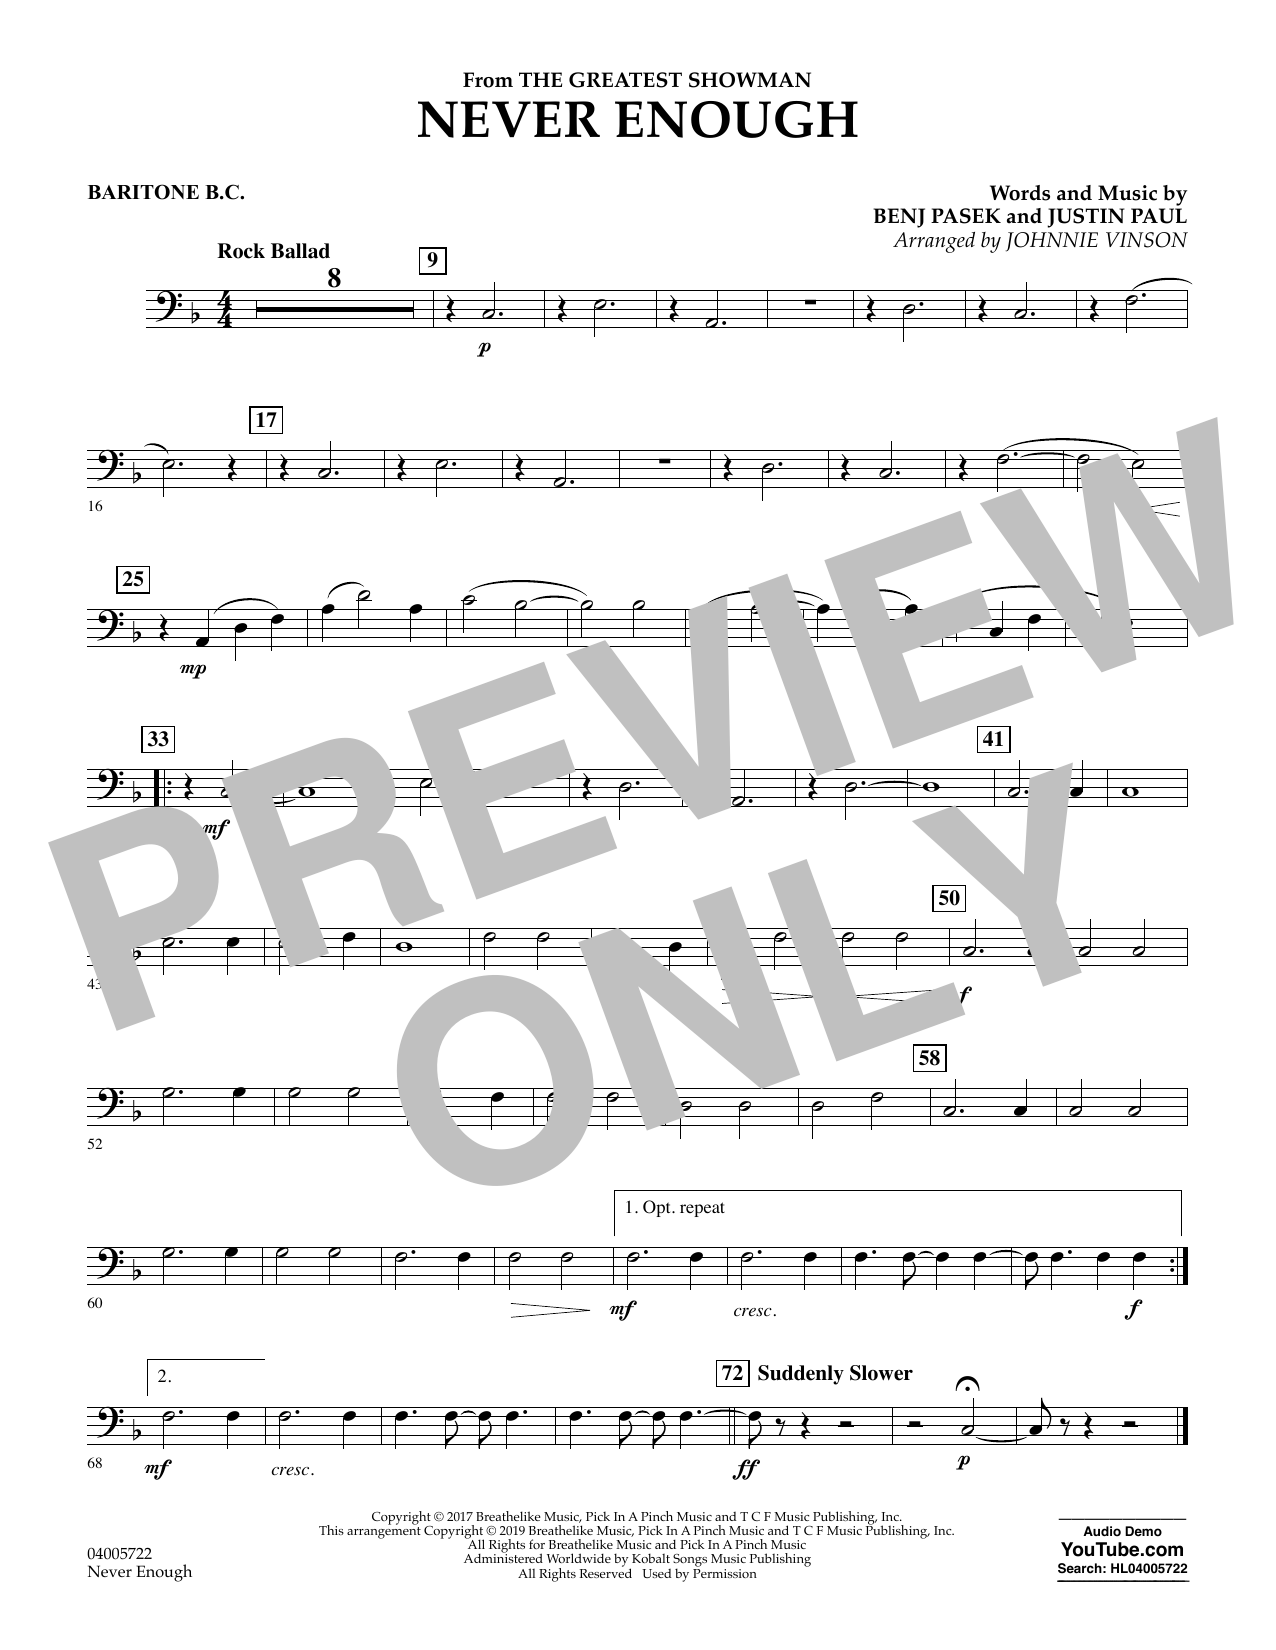 Never Enough (from The Greatest Showman) (arr. Johnnie Vinson) - Baritone B.C. (Concert Band)